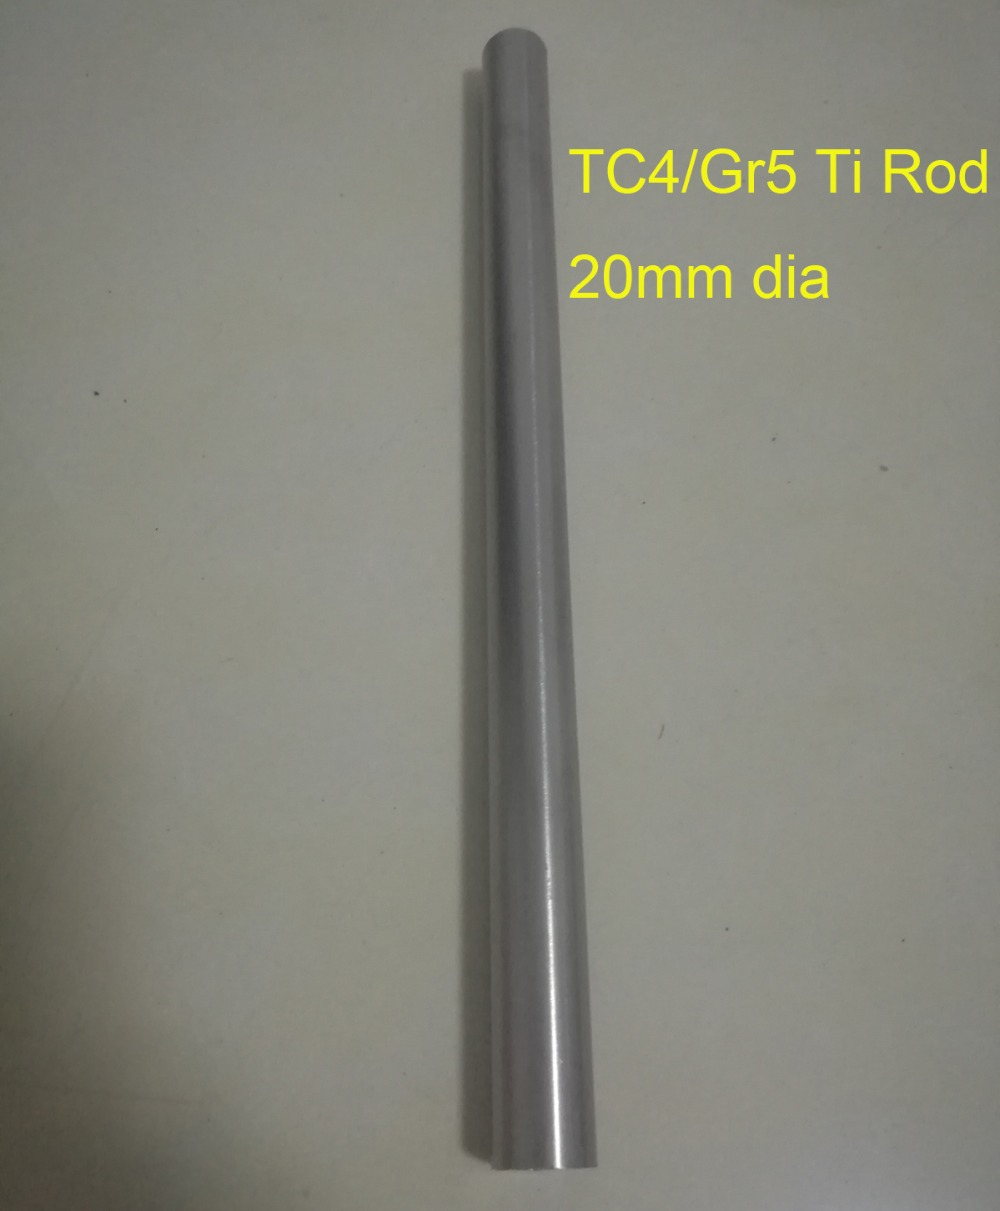 Tool parts DIY material 20mm Dia TC4 GR5 Titanium rod Length about 300 mm pc